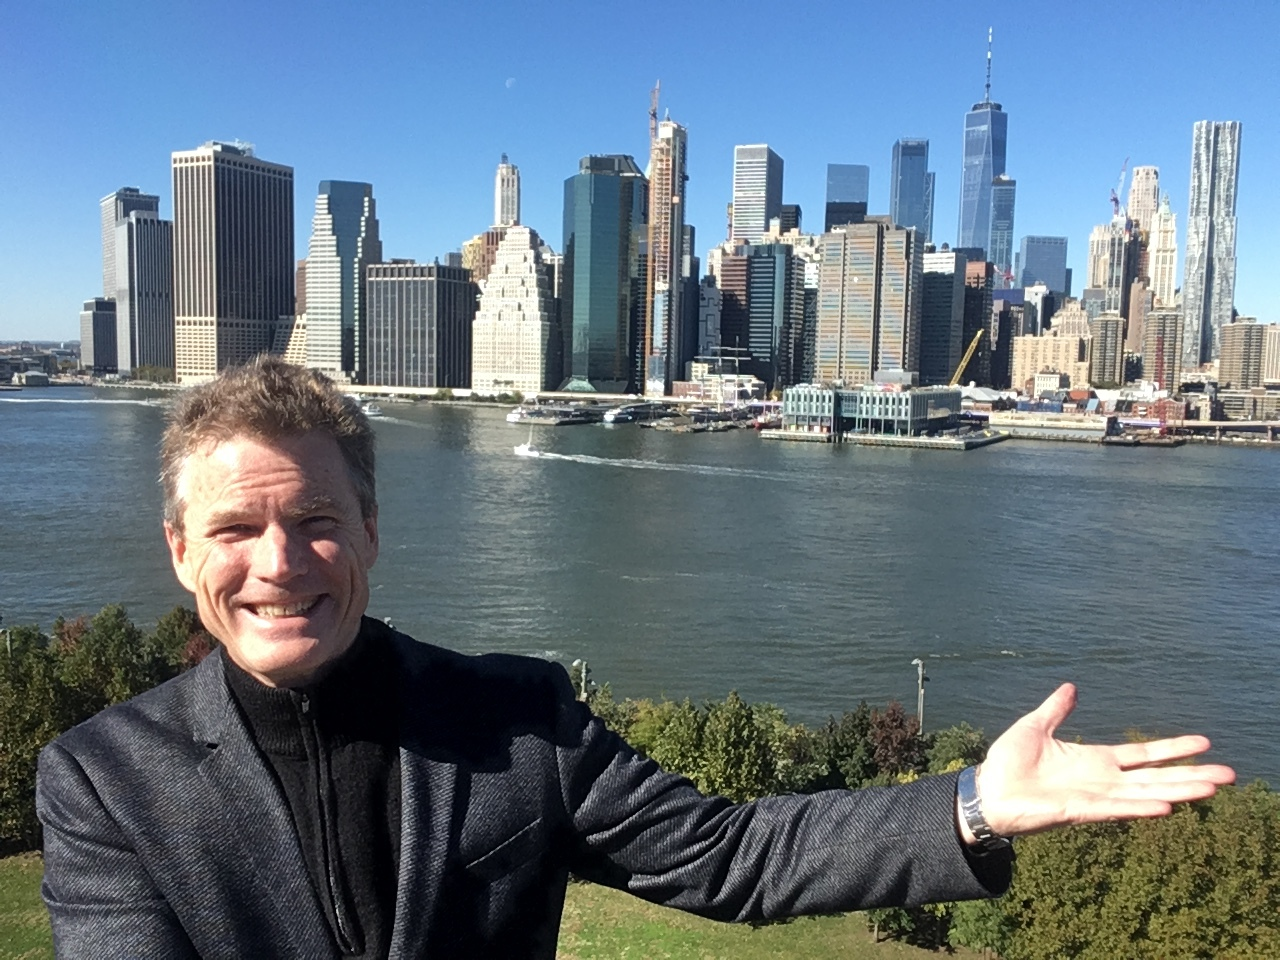 Brooklyn NYC after presenting at Mastercard. This was the backdrop they gave me!.JPG